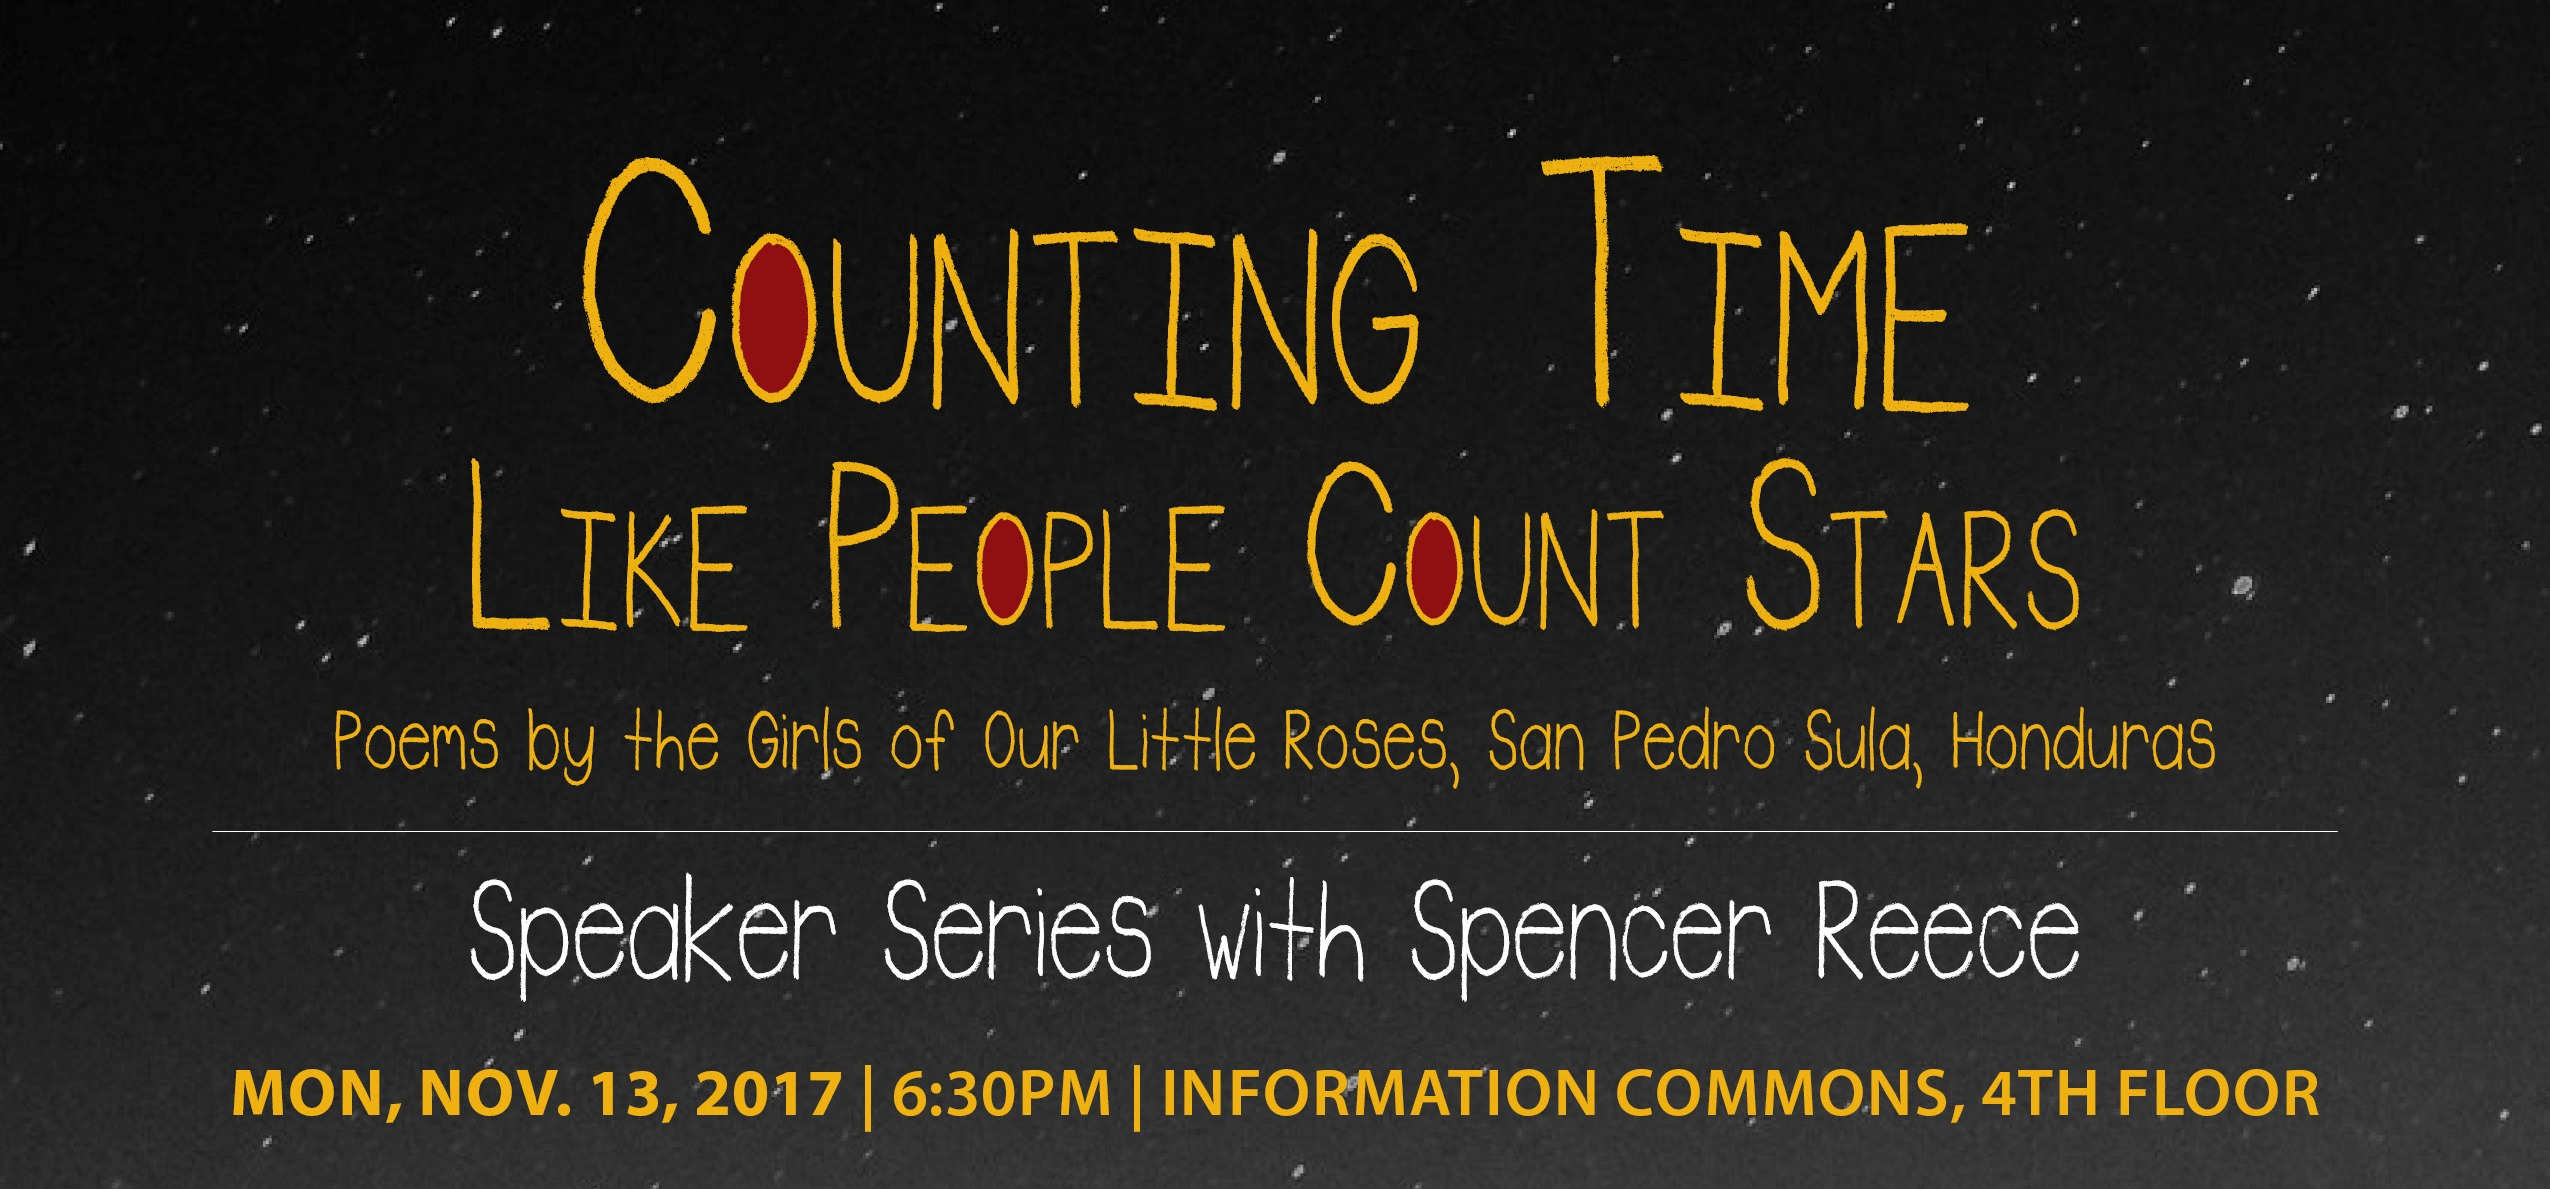 Counting Time  Like People Count Stars: Speaker Series with Spencer Reece